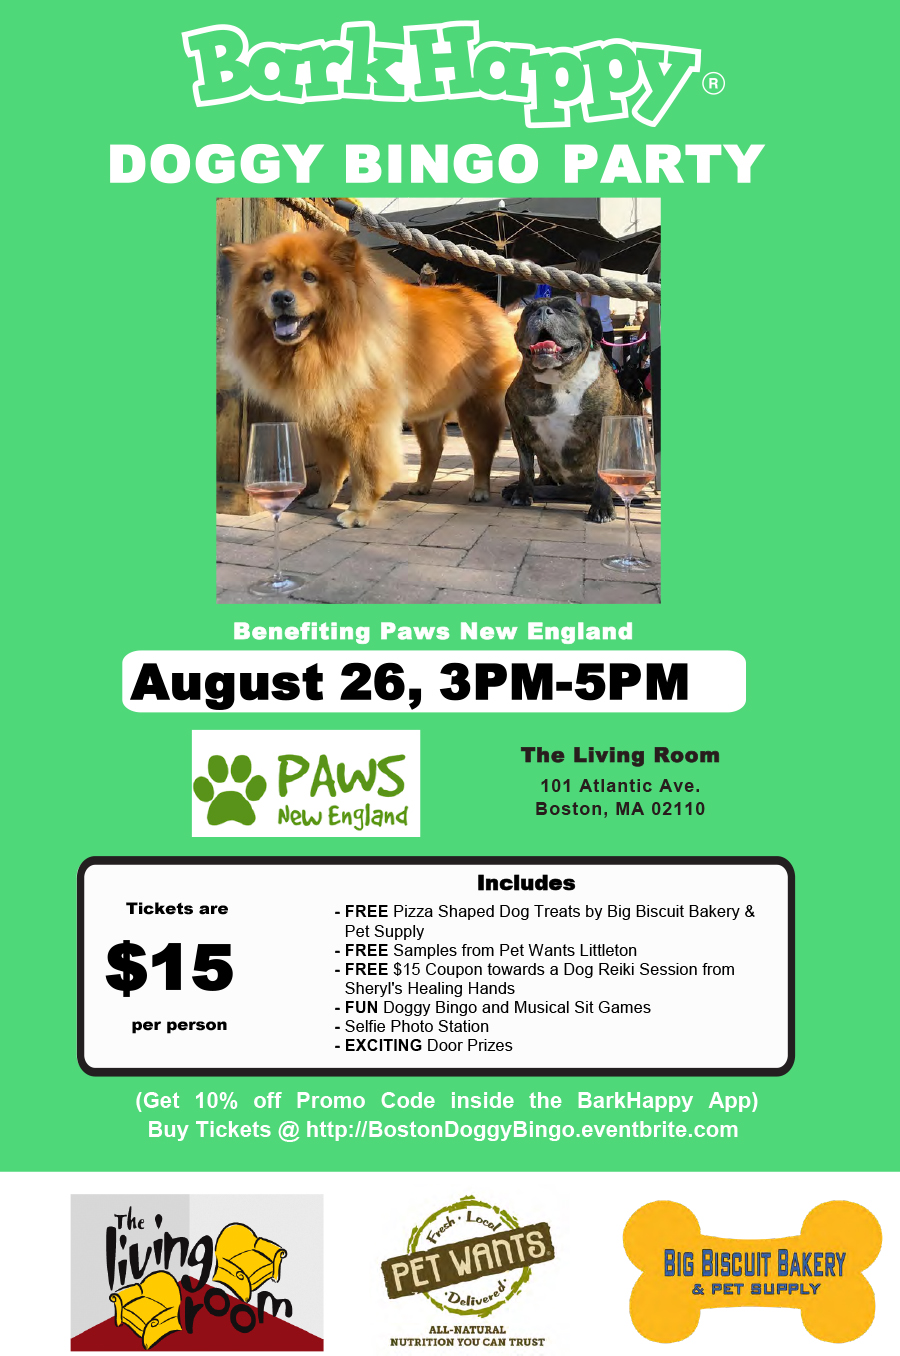 Barkhappy boston doggy bingo party benefiting paws new for Living room 101 atlantic ave boston